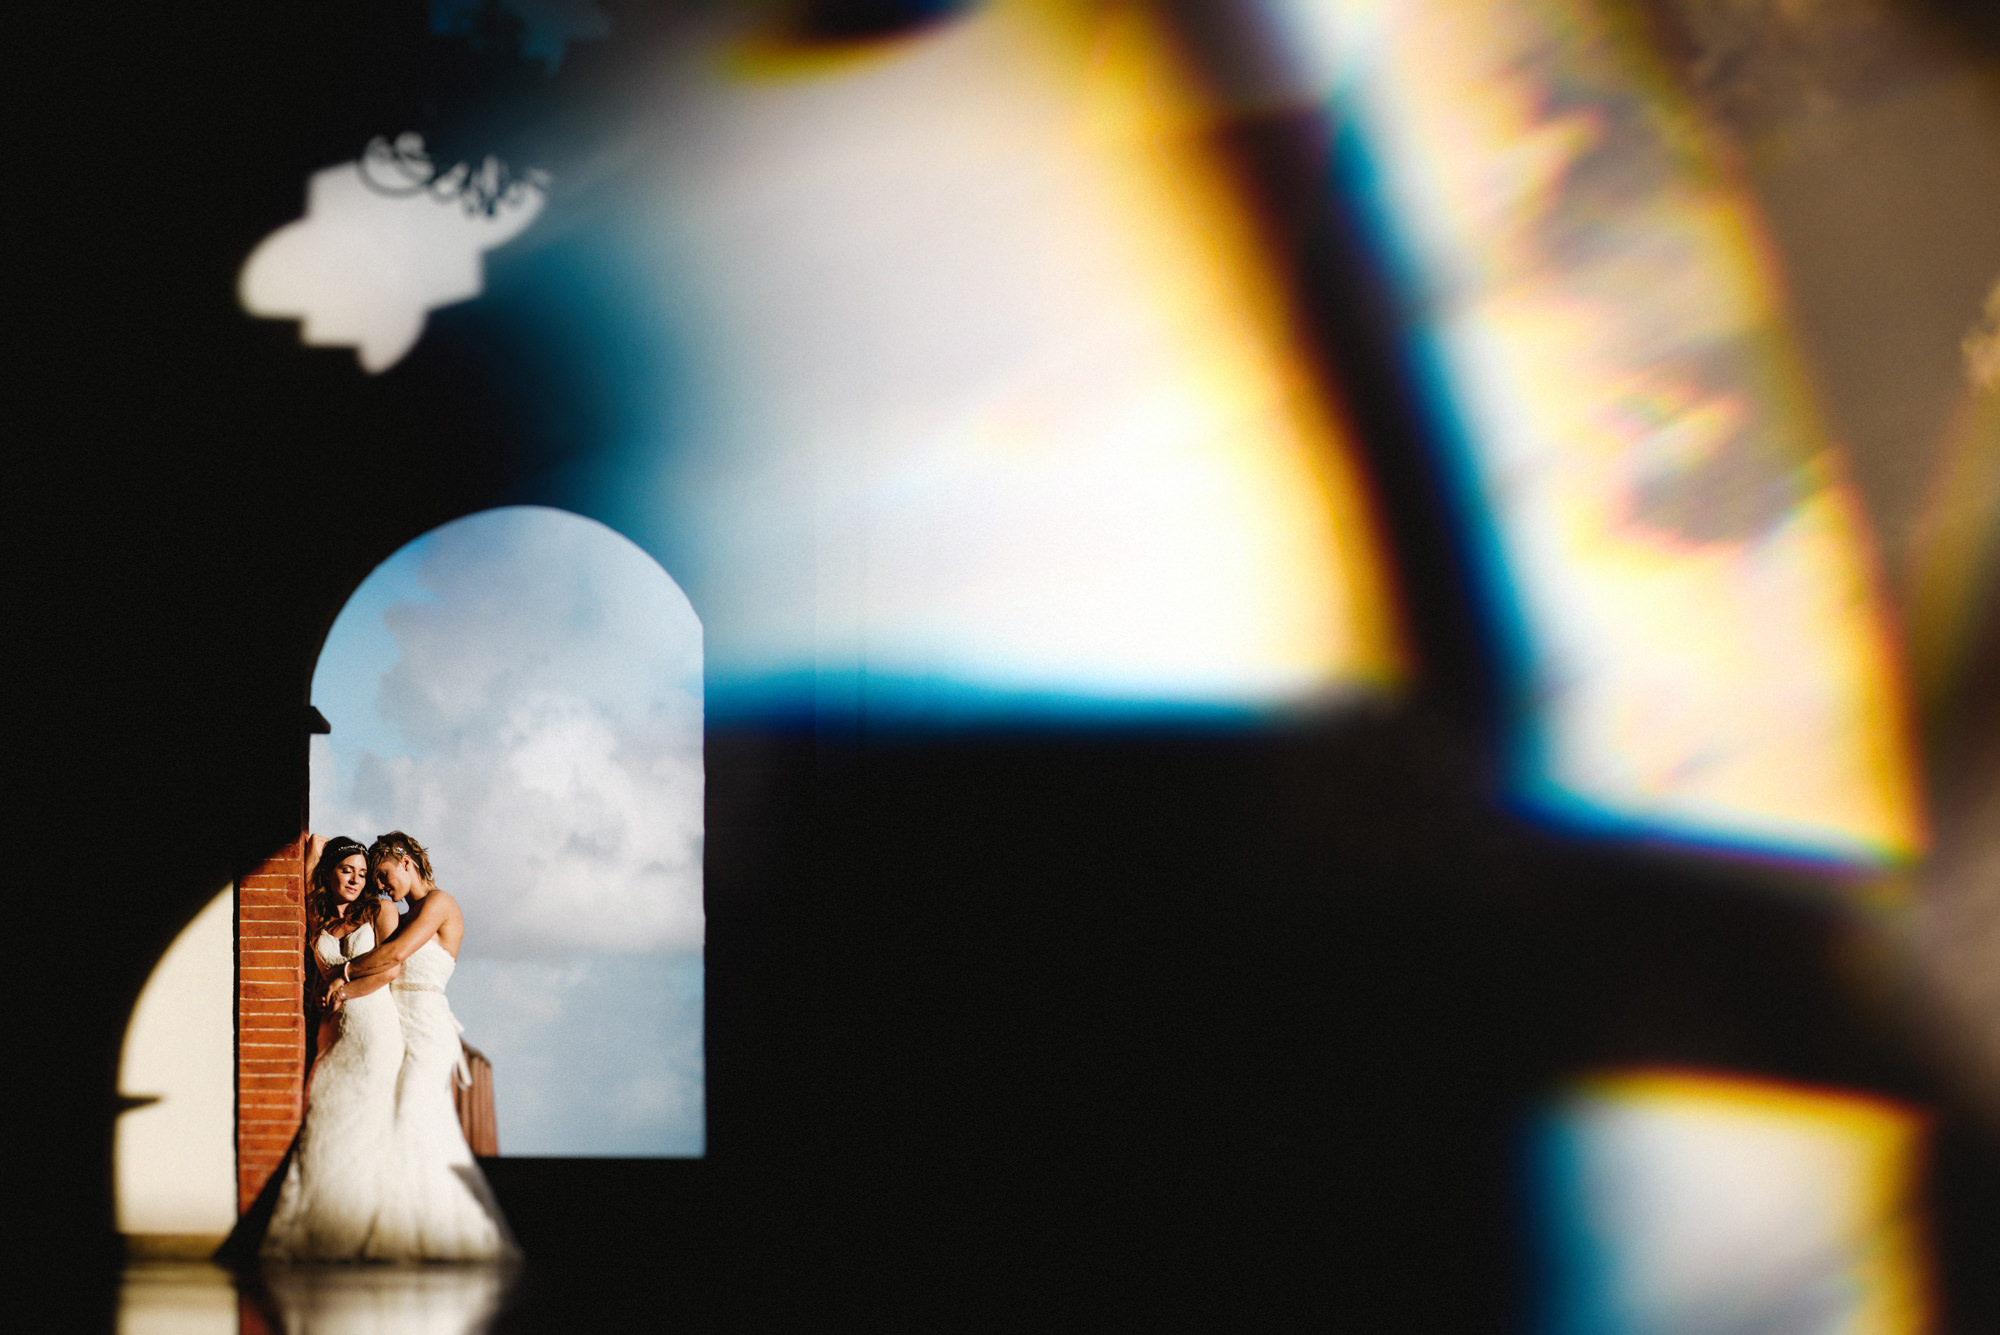 Two brides embrace in strapless gowns - prism photo by Fer Juaristi